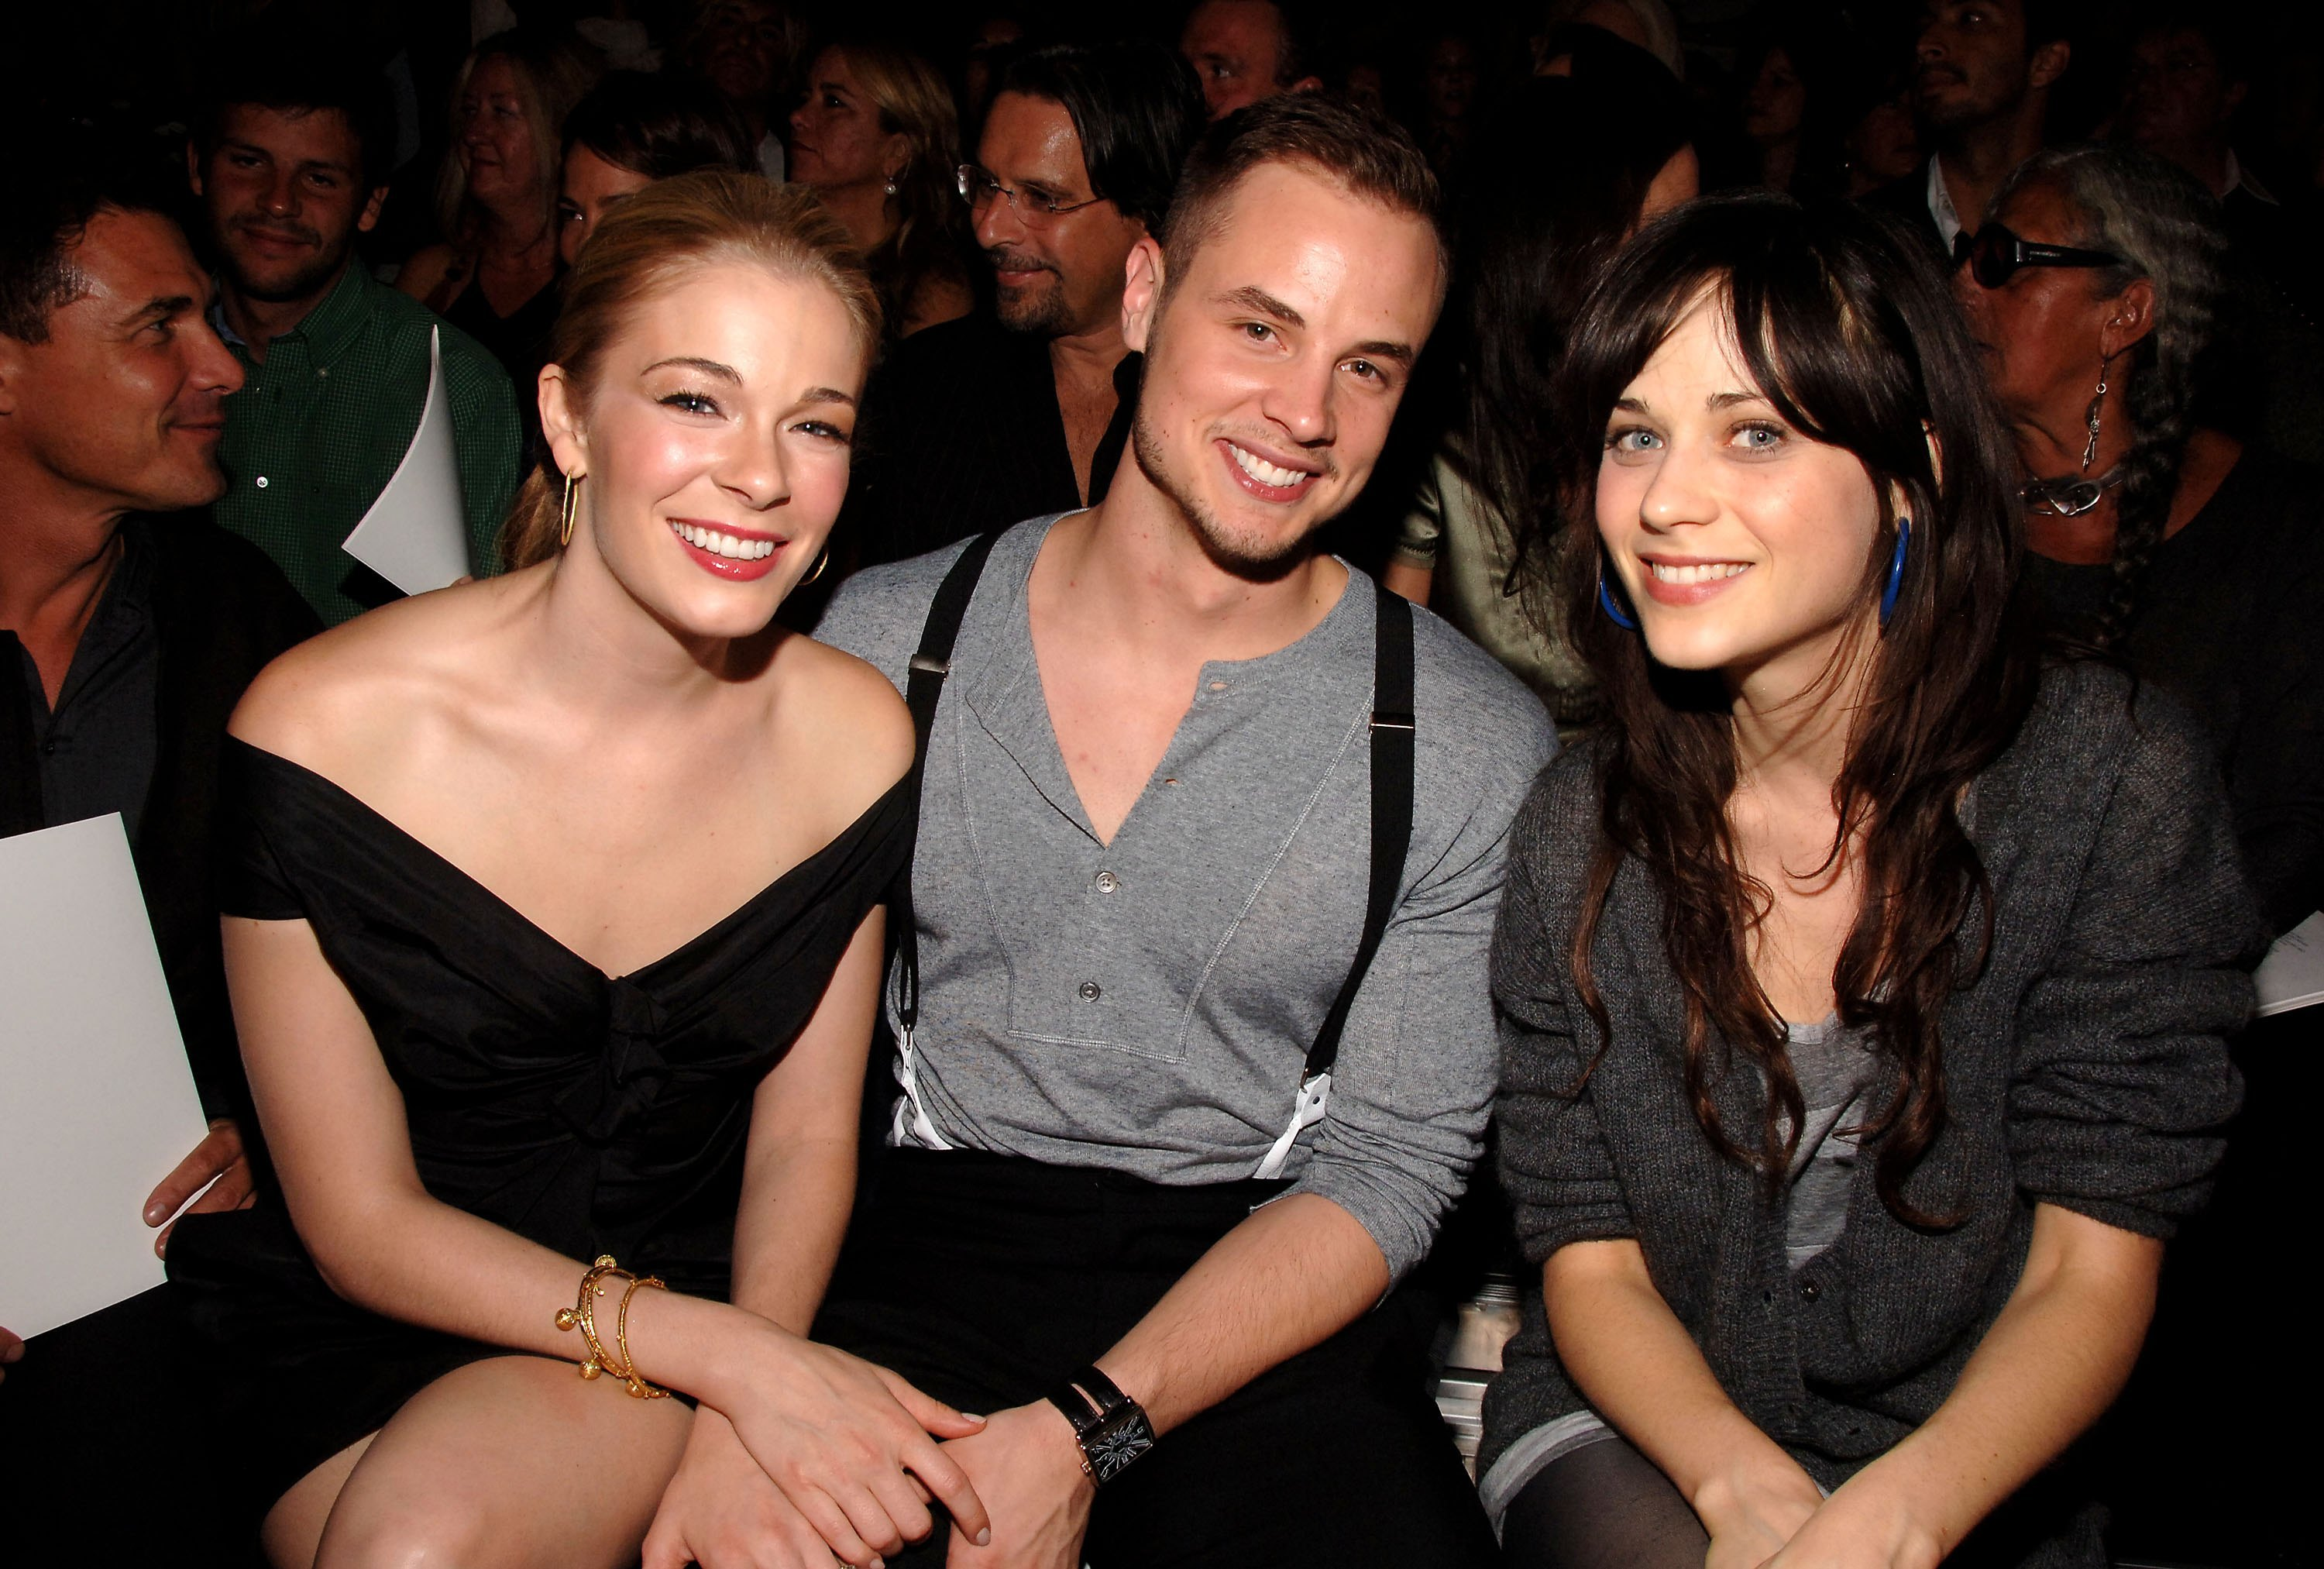 Leann Rimes, Dean Sheremet and Zooey Deschanel attend the Marc Jacobs Spring 2007 fashion show during Olympus Fashion Week at the N.Y. State Armory in New York City on Sept. 11, 2006.